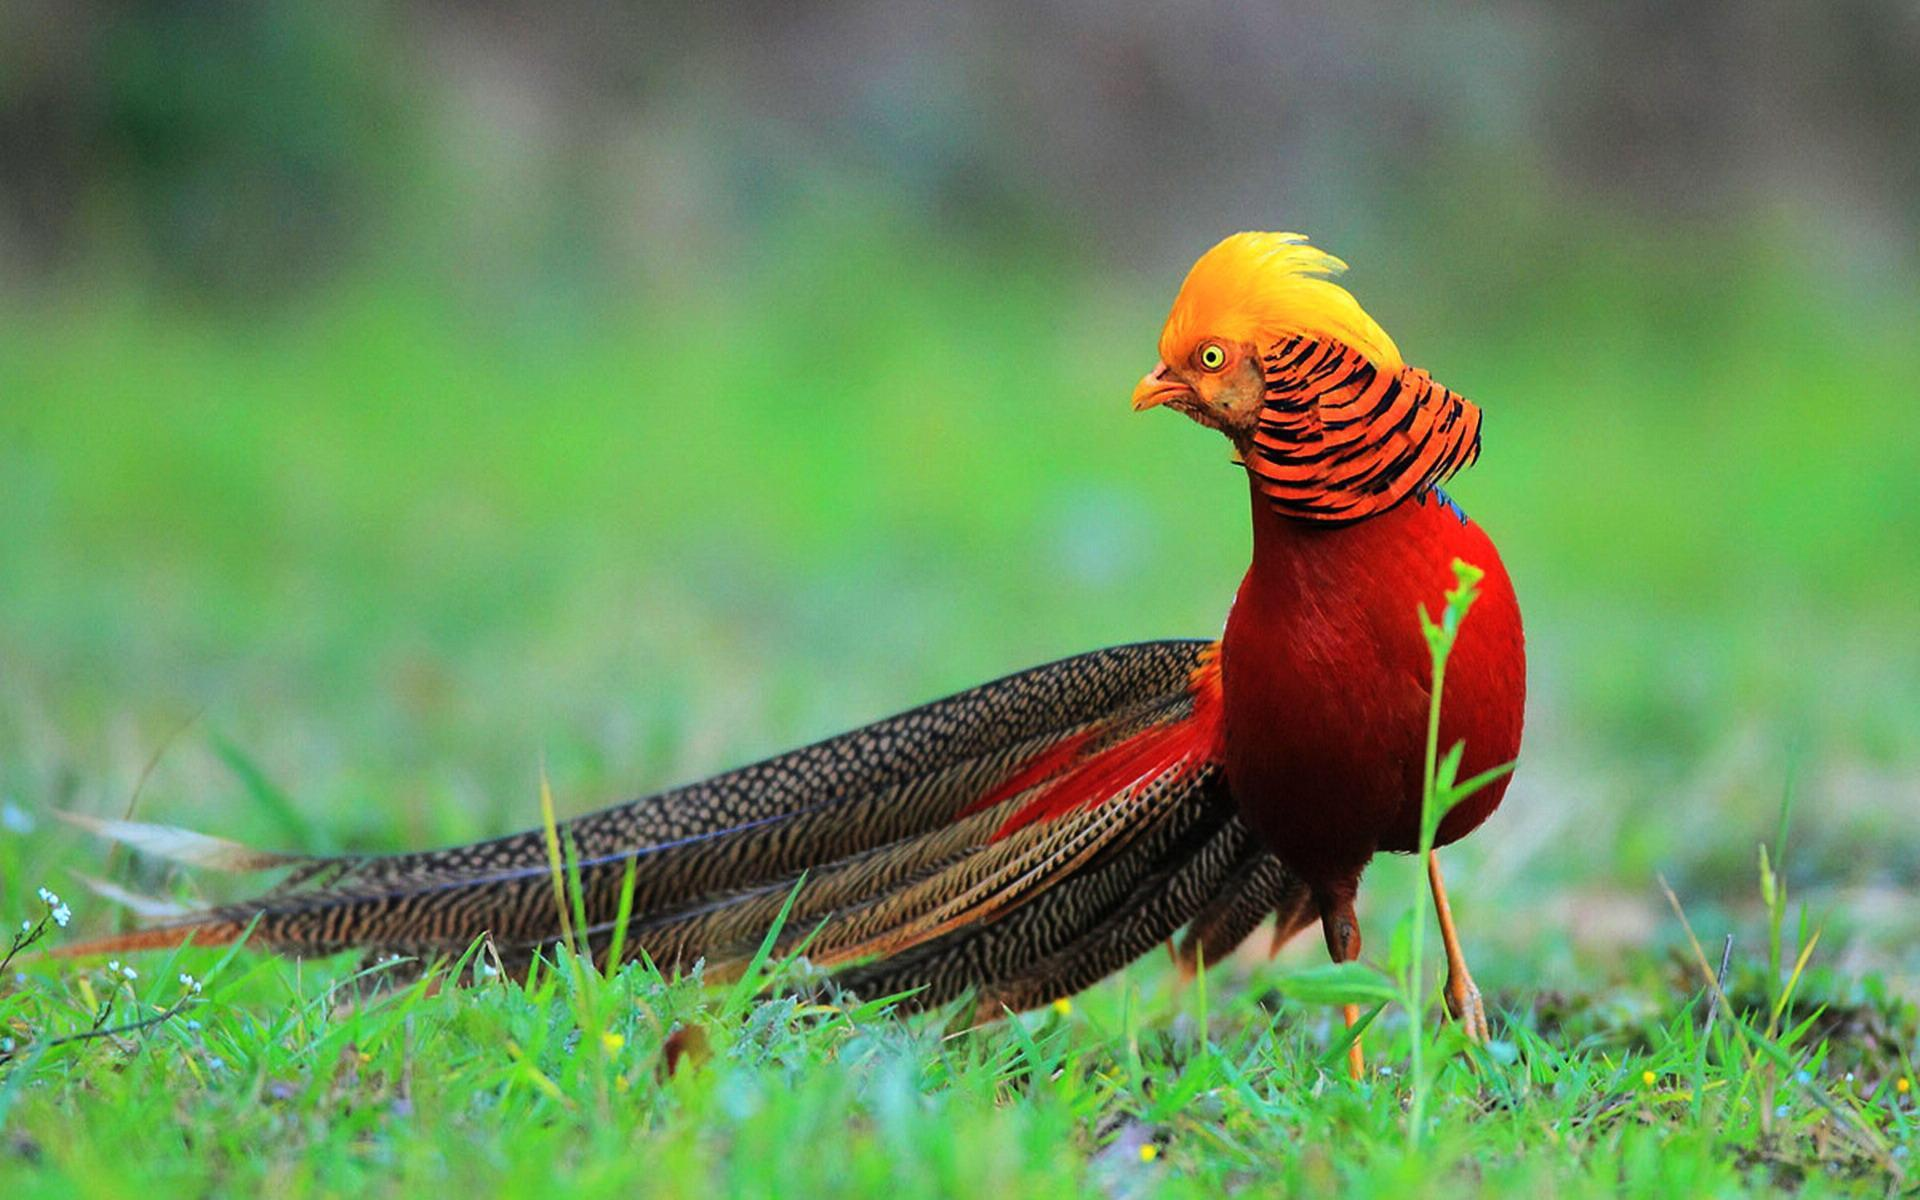 Golden Pheasant is a real life Phoenix            NatureIsFuckingLit 32 9k           Golden Pheasant is a real life Phoenix